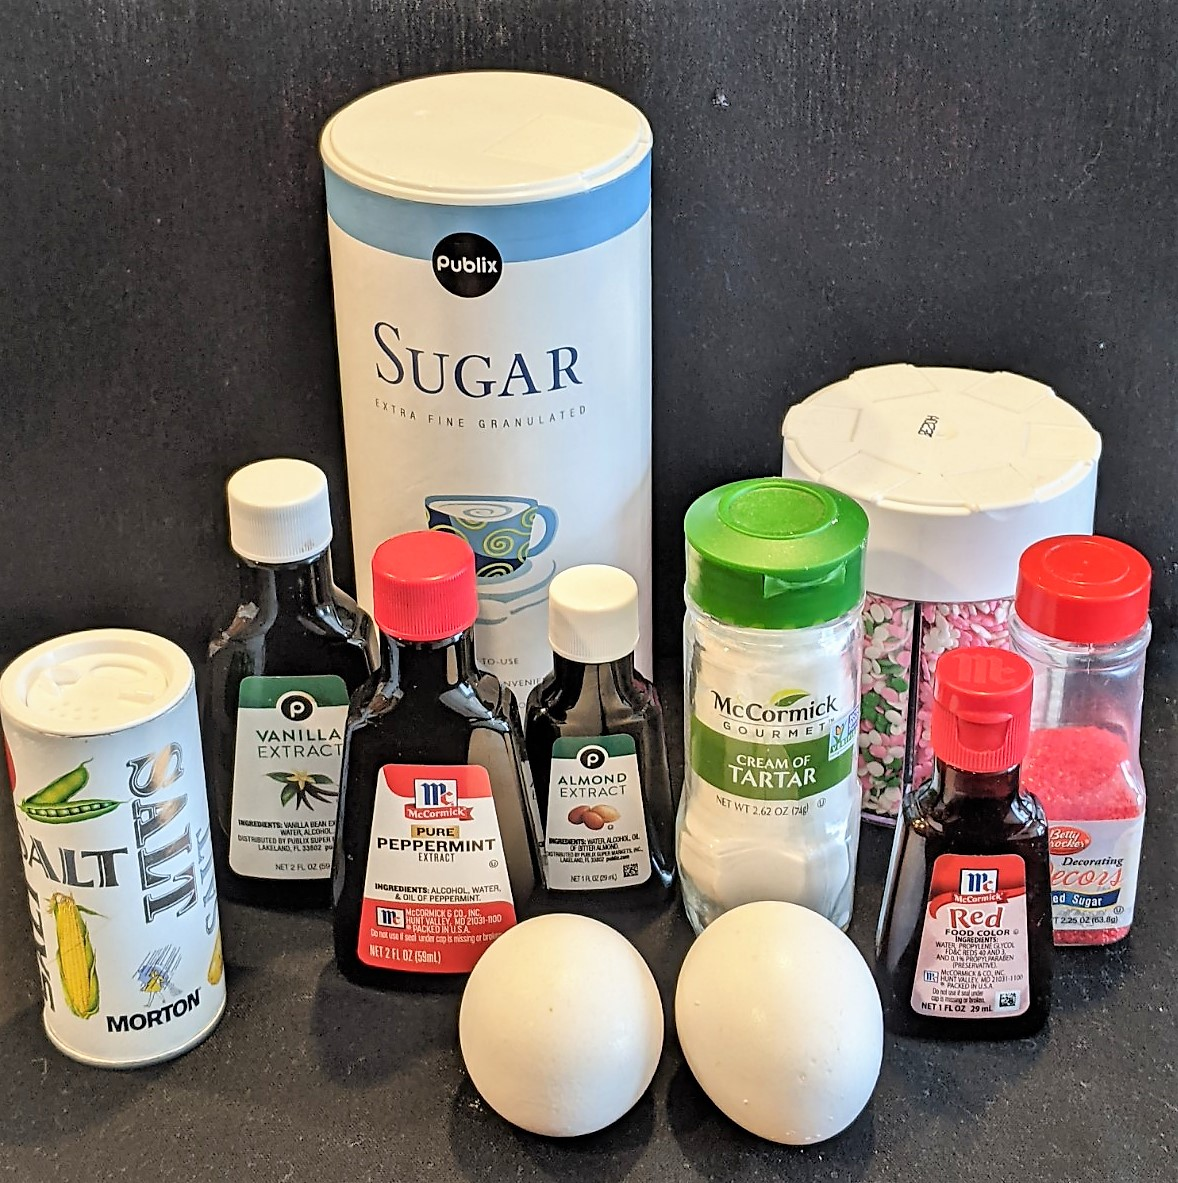 Ingredients are 2 egg whites, sugar, cream of tartar, salt and your choice of flavor extract (vanilla, almond or peppermint).  Optional red food coloring and decorations.